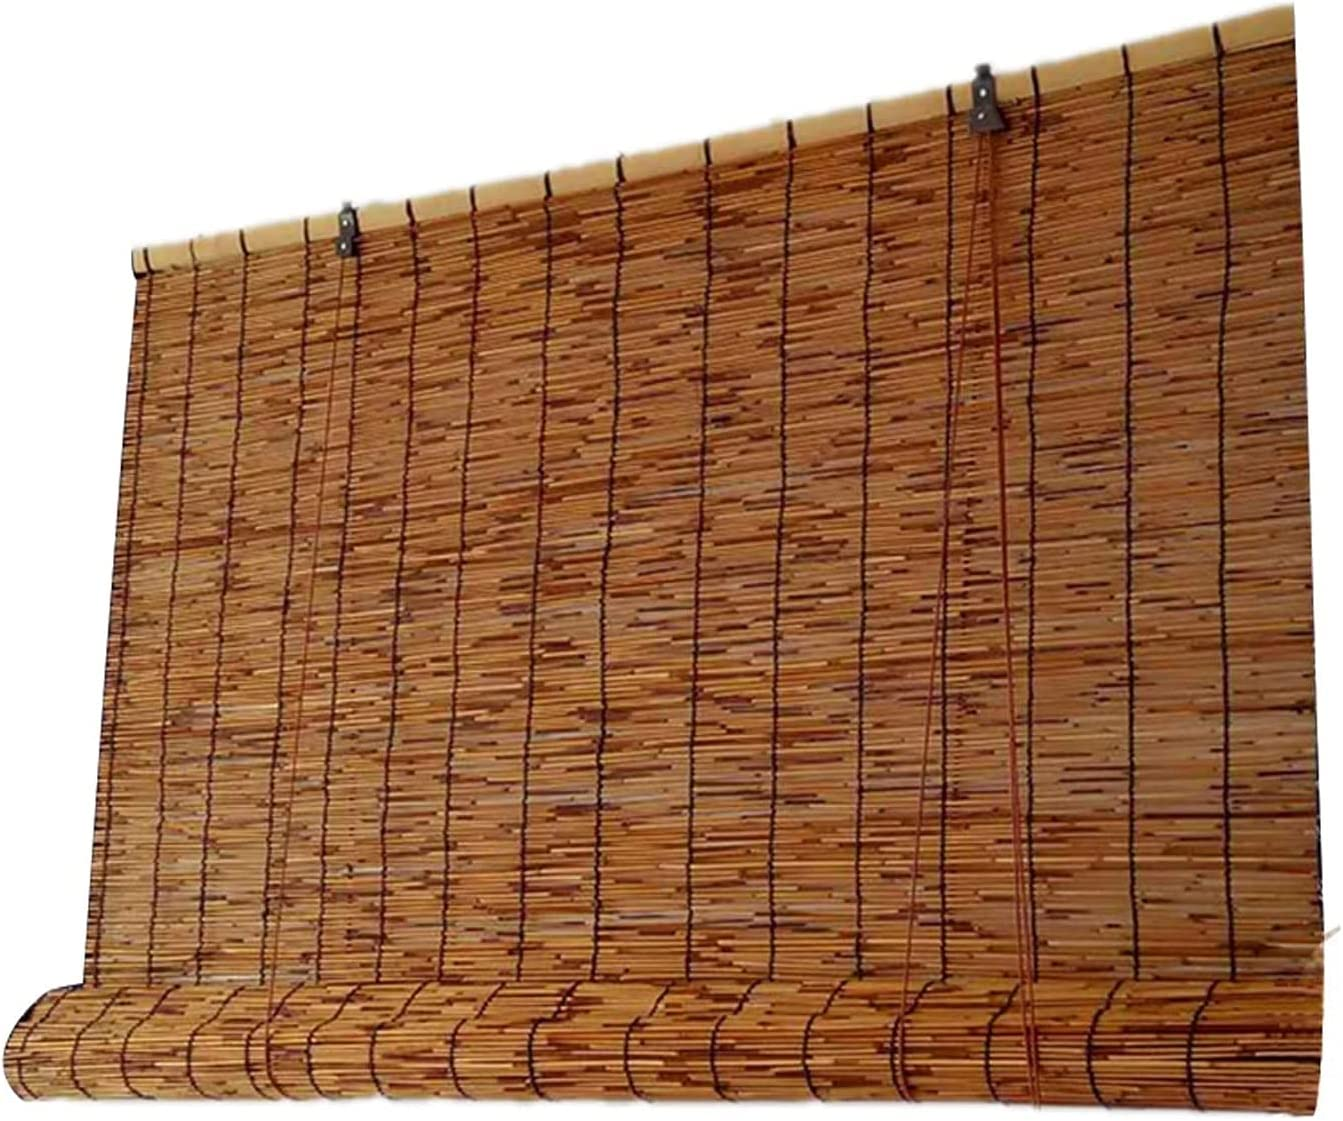 MTDWEITOO Bamboo Blinds for Shades Roller Ceilin Windows New Max 74% OFF Orleans Mall